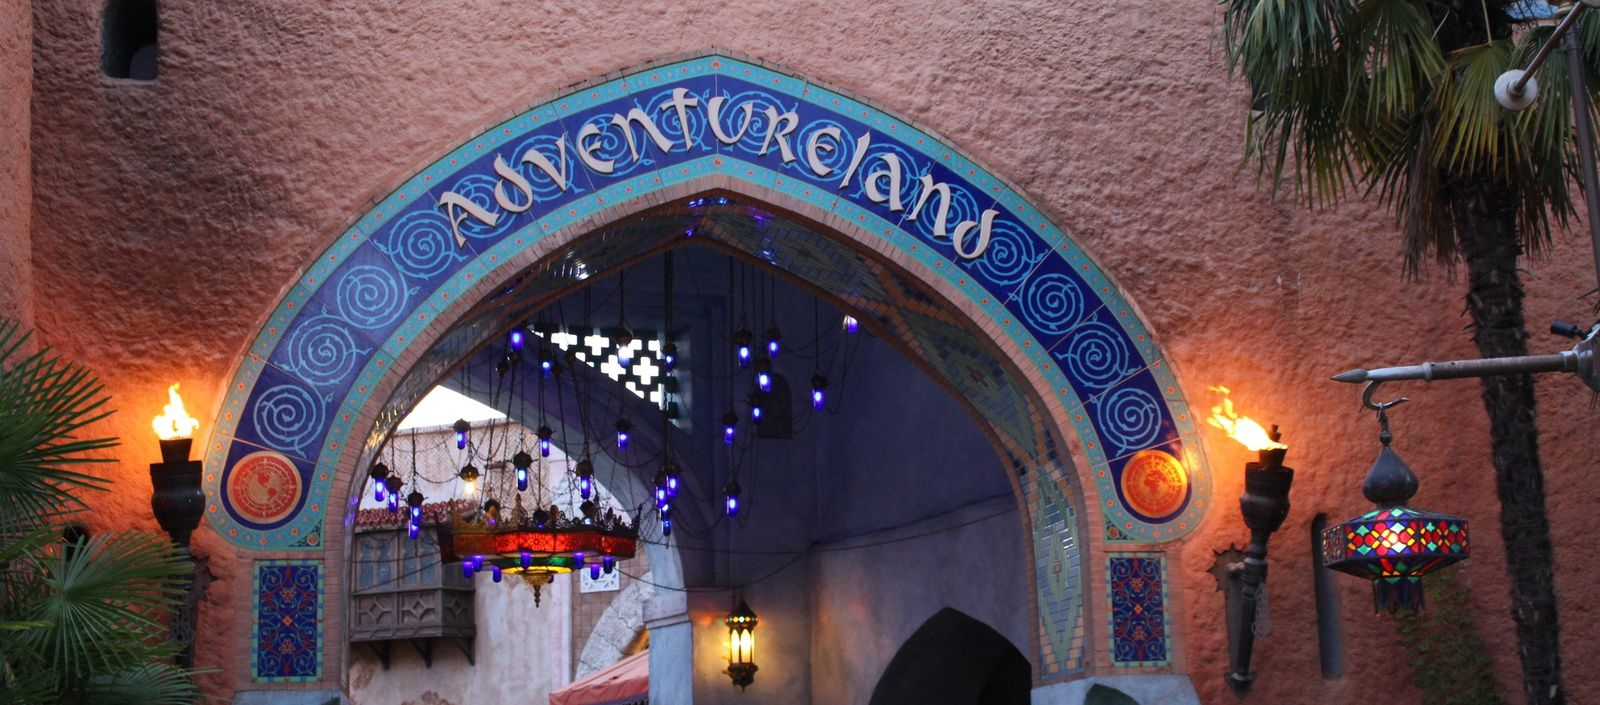 Les restaurants d'Adventureland à Disneyland Paris